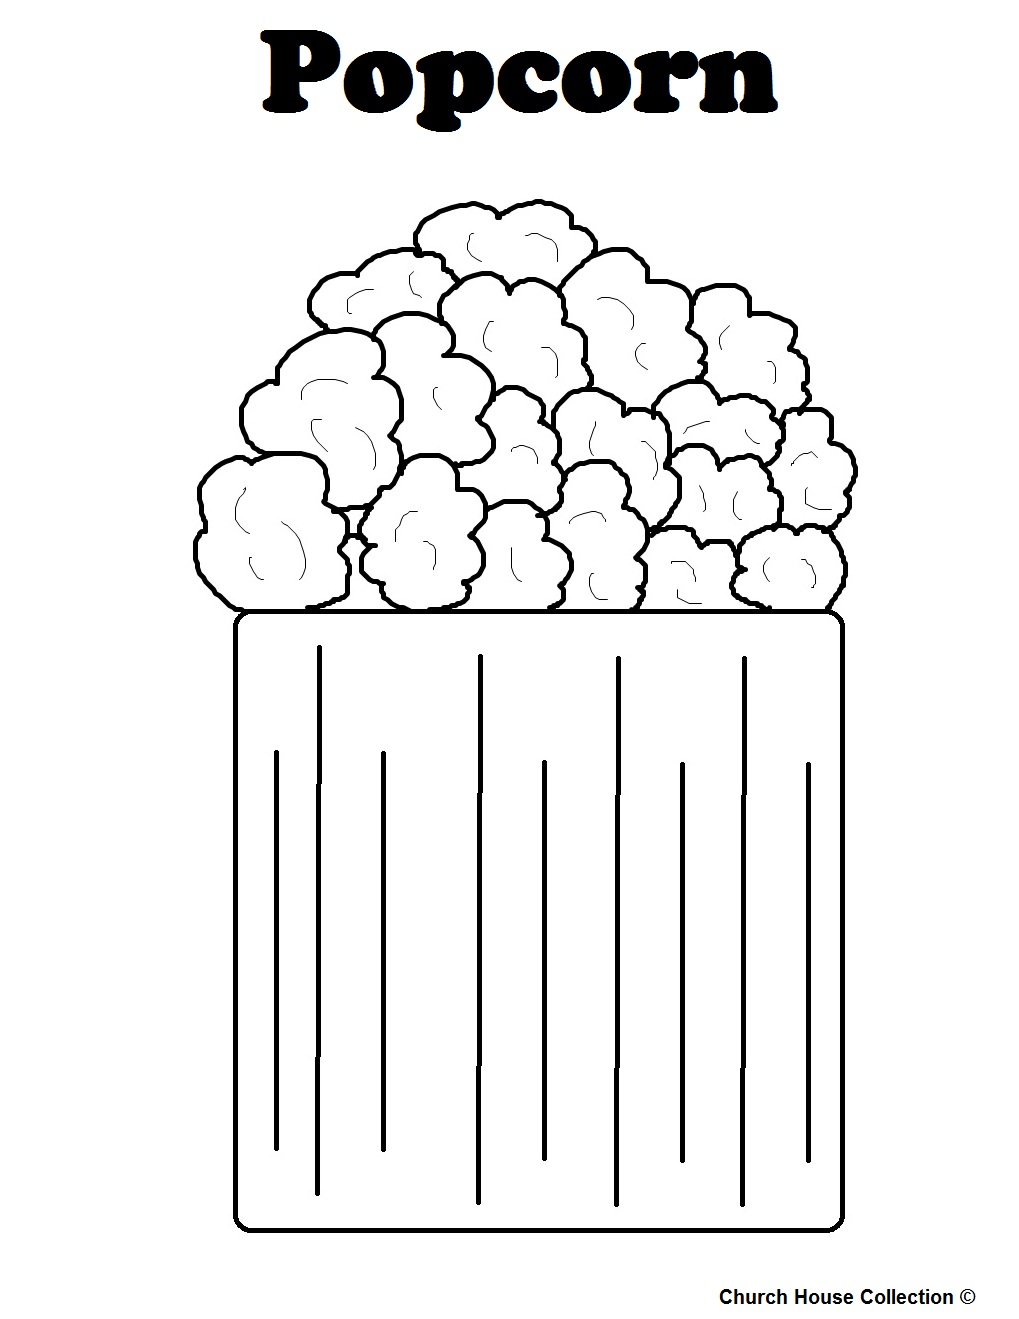 popcorn printable coloring pages - photo#20